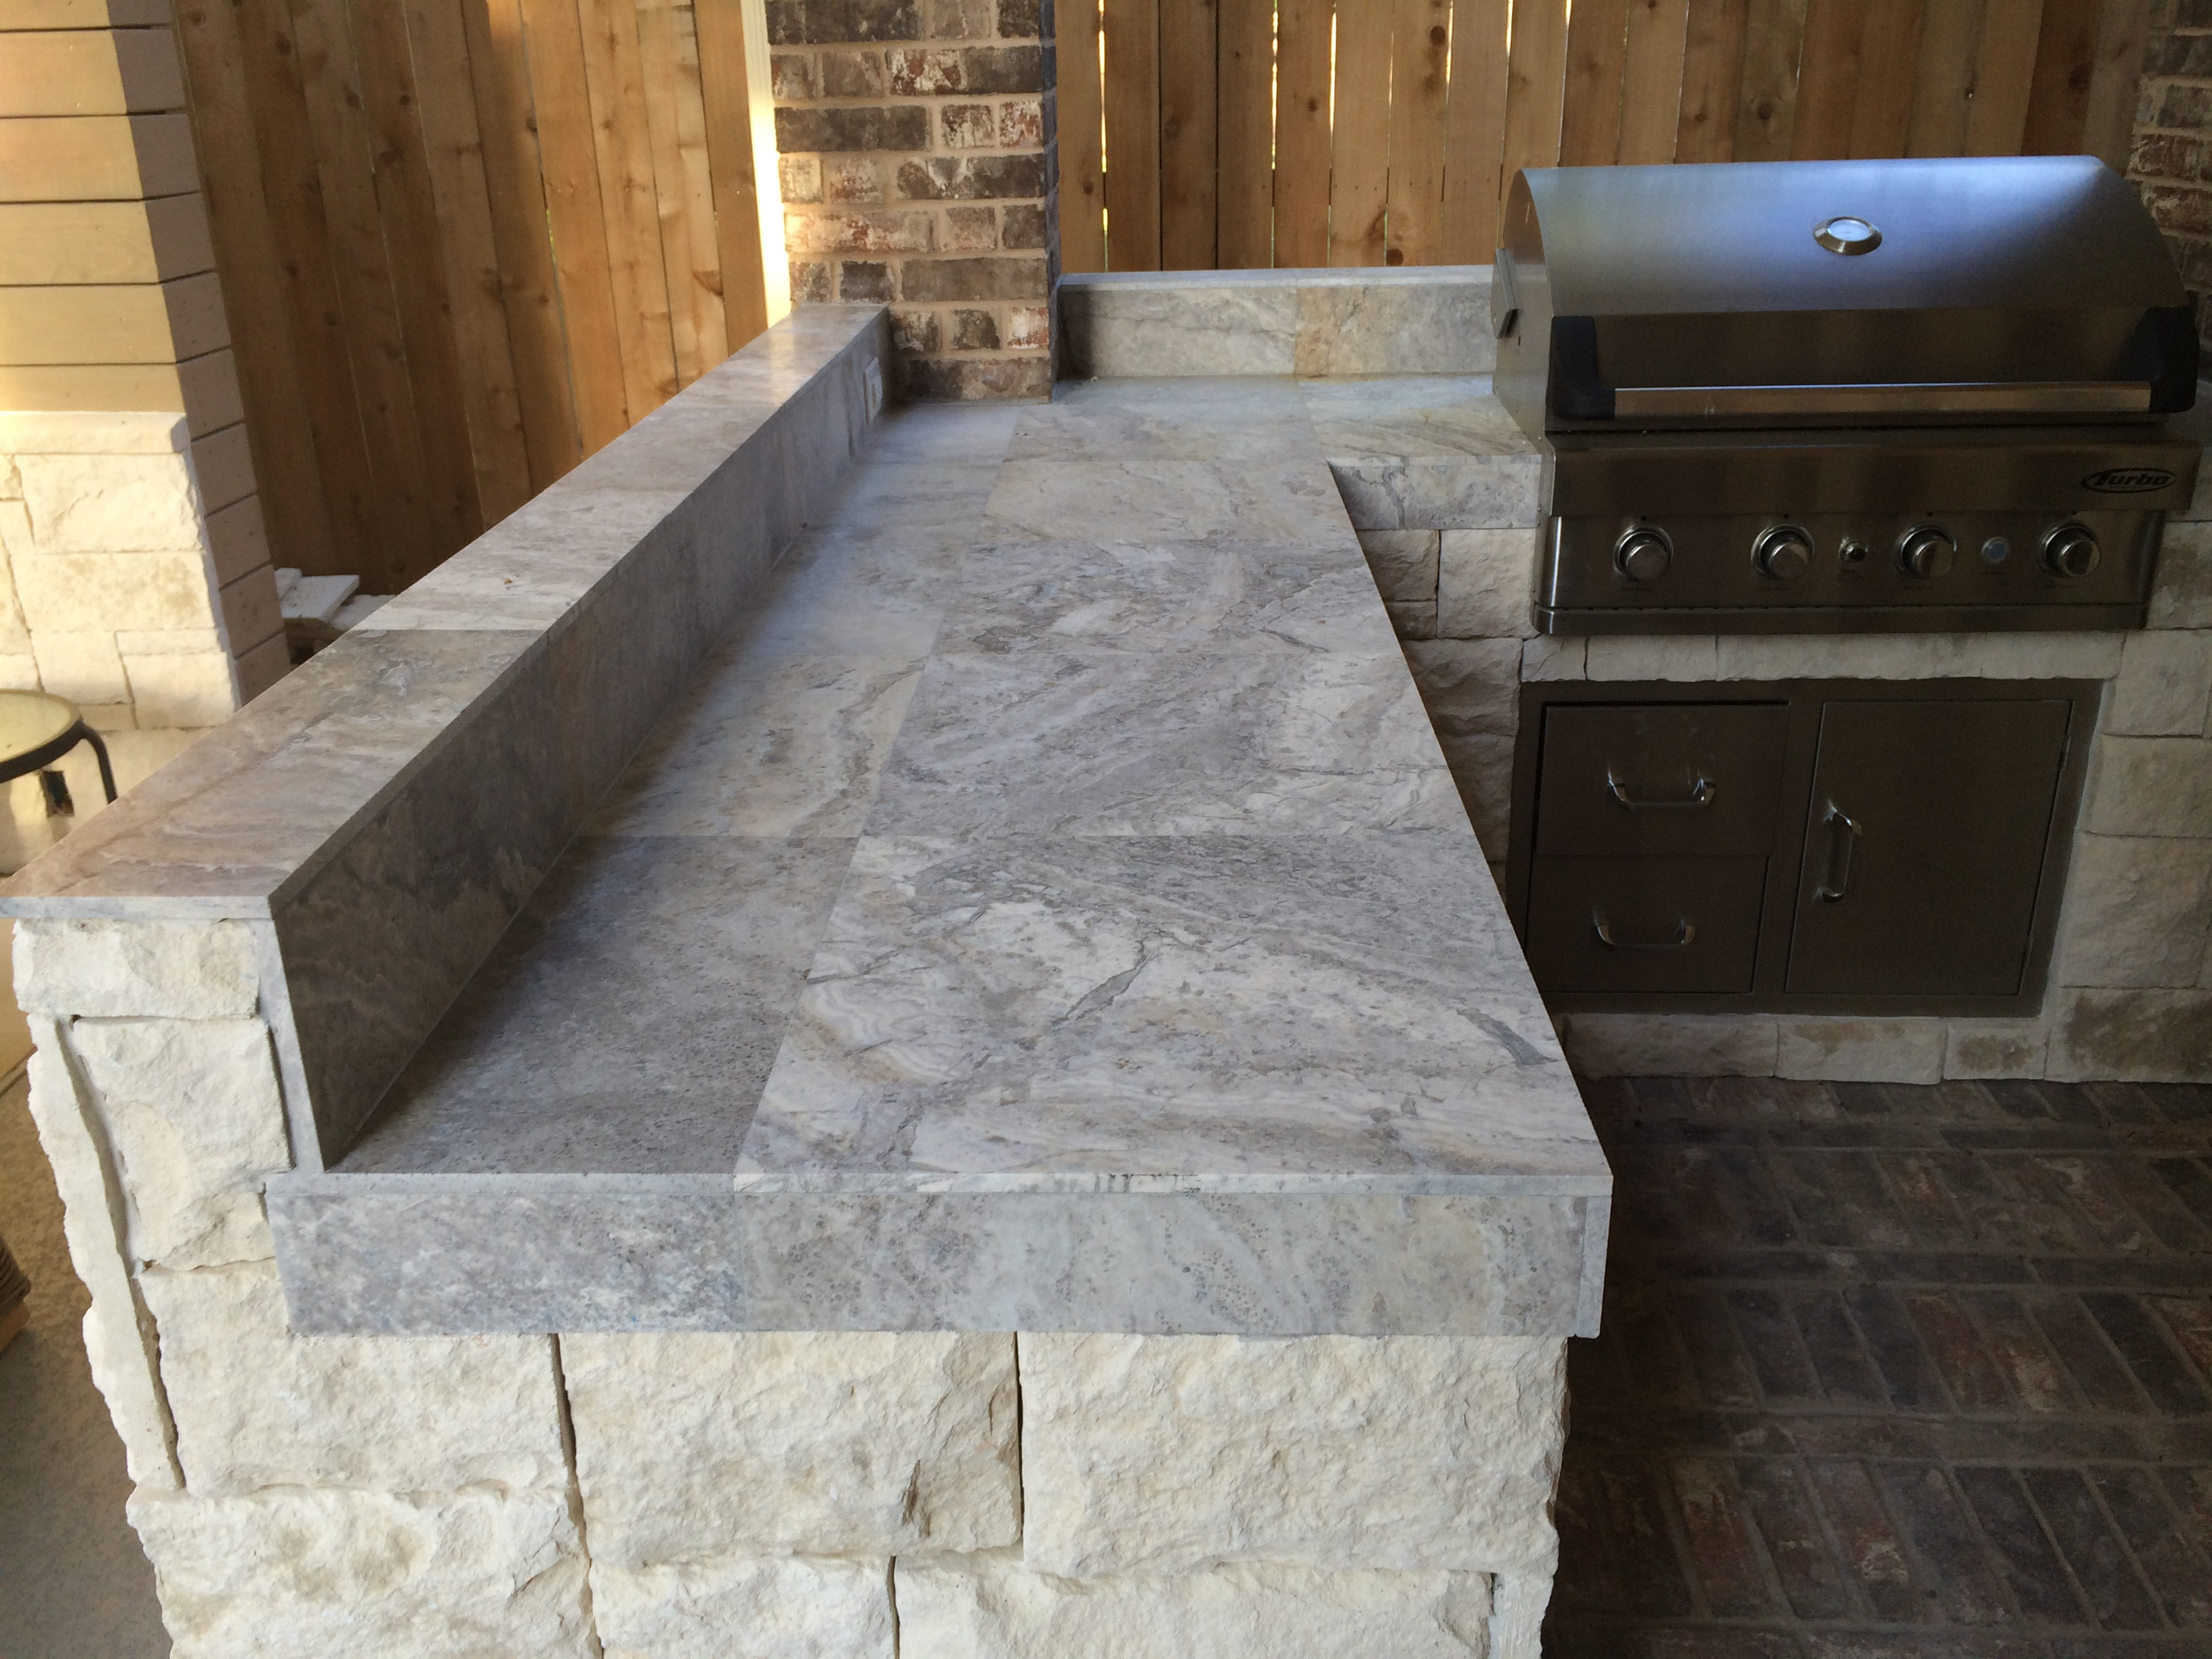 Best ideas about Outdoor Kitchen Countertops . Save or Pin Houston Outdoor Kitchen With Silver Travertine Tile Countertop Now.